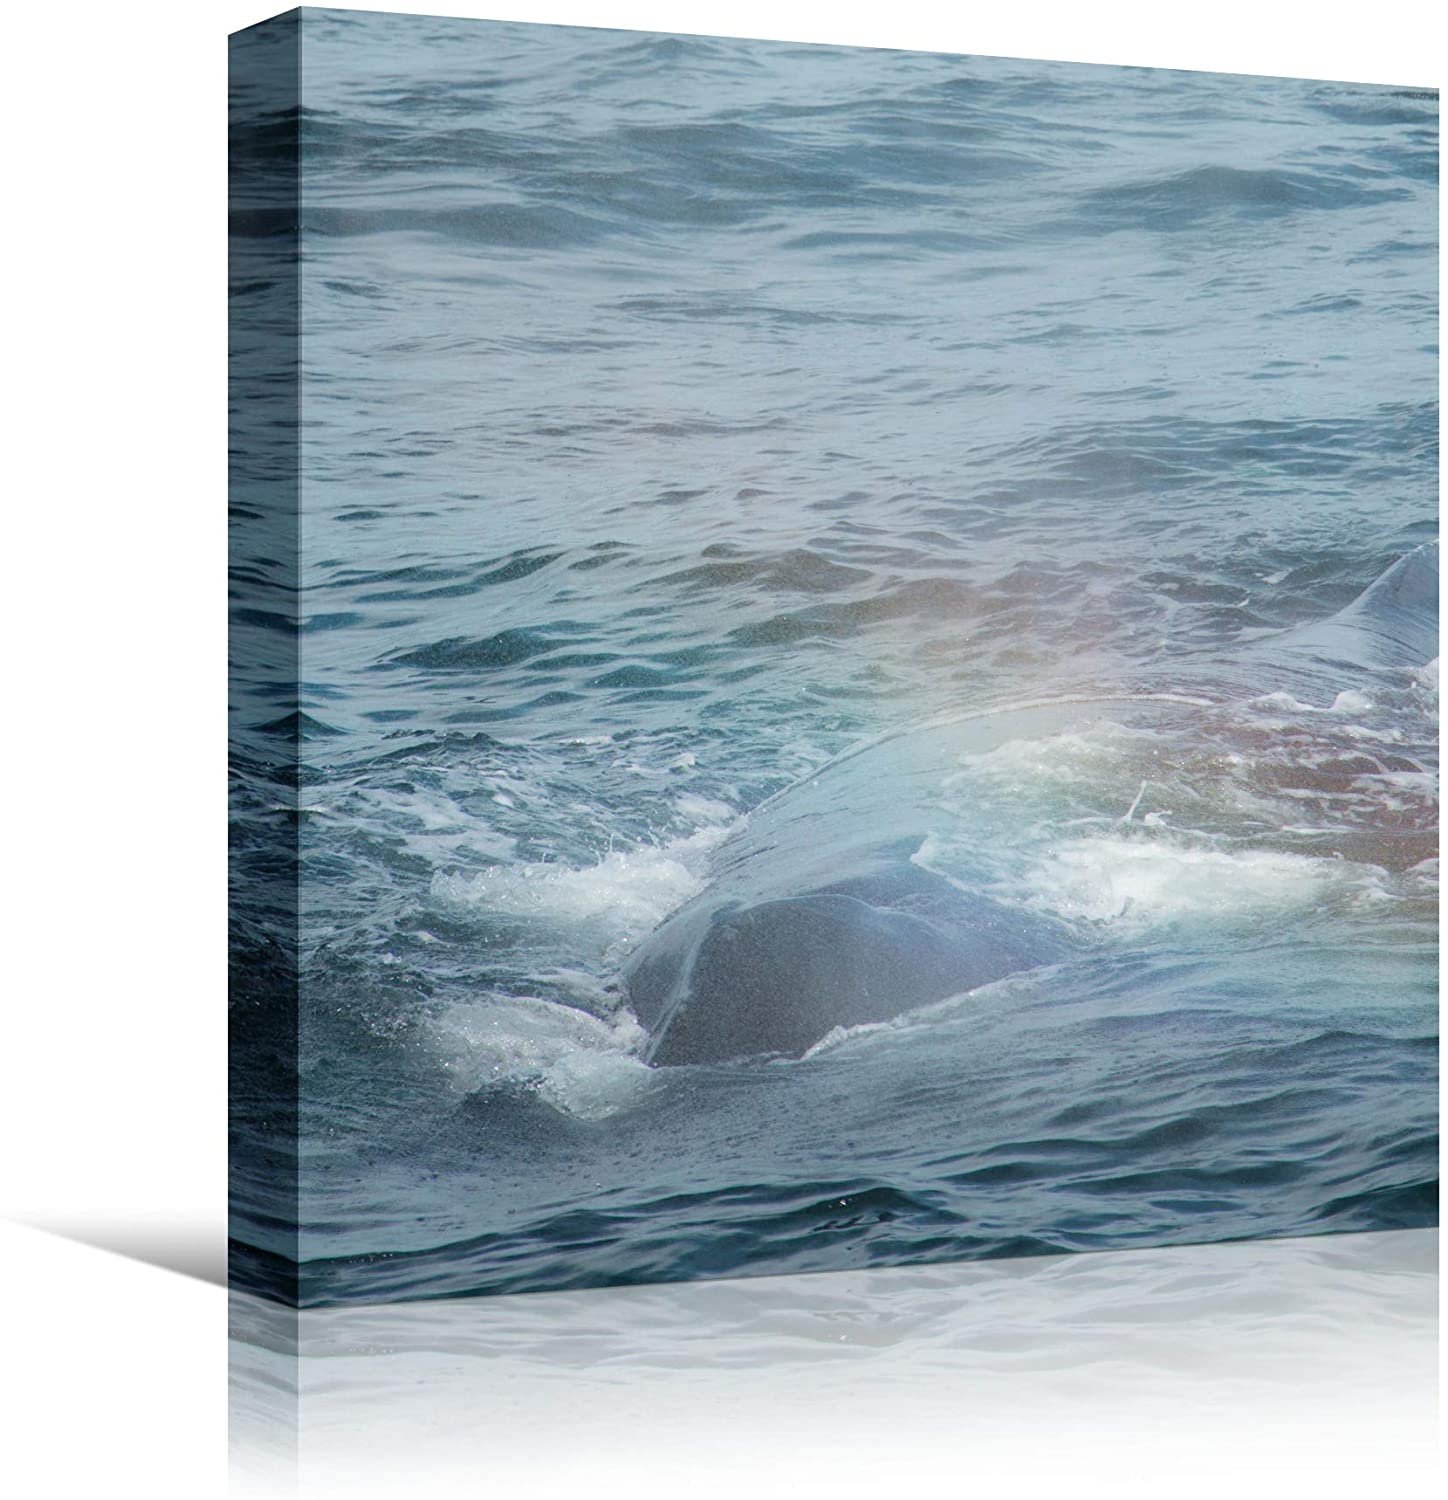 bestdeal depot Fish on The Surface VI Bedroom Dolphin Marine Life Multicolor Nautical Photography Wall Art Prints for Living Room,Bedroom Ready to Hang - 16x16 inches